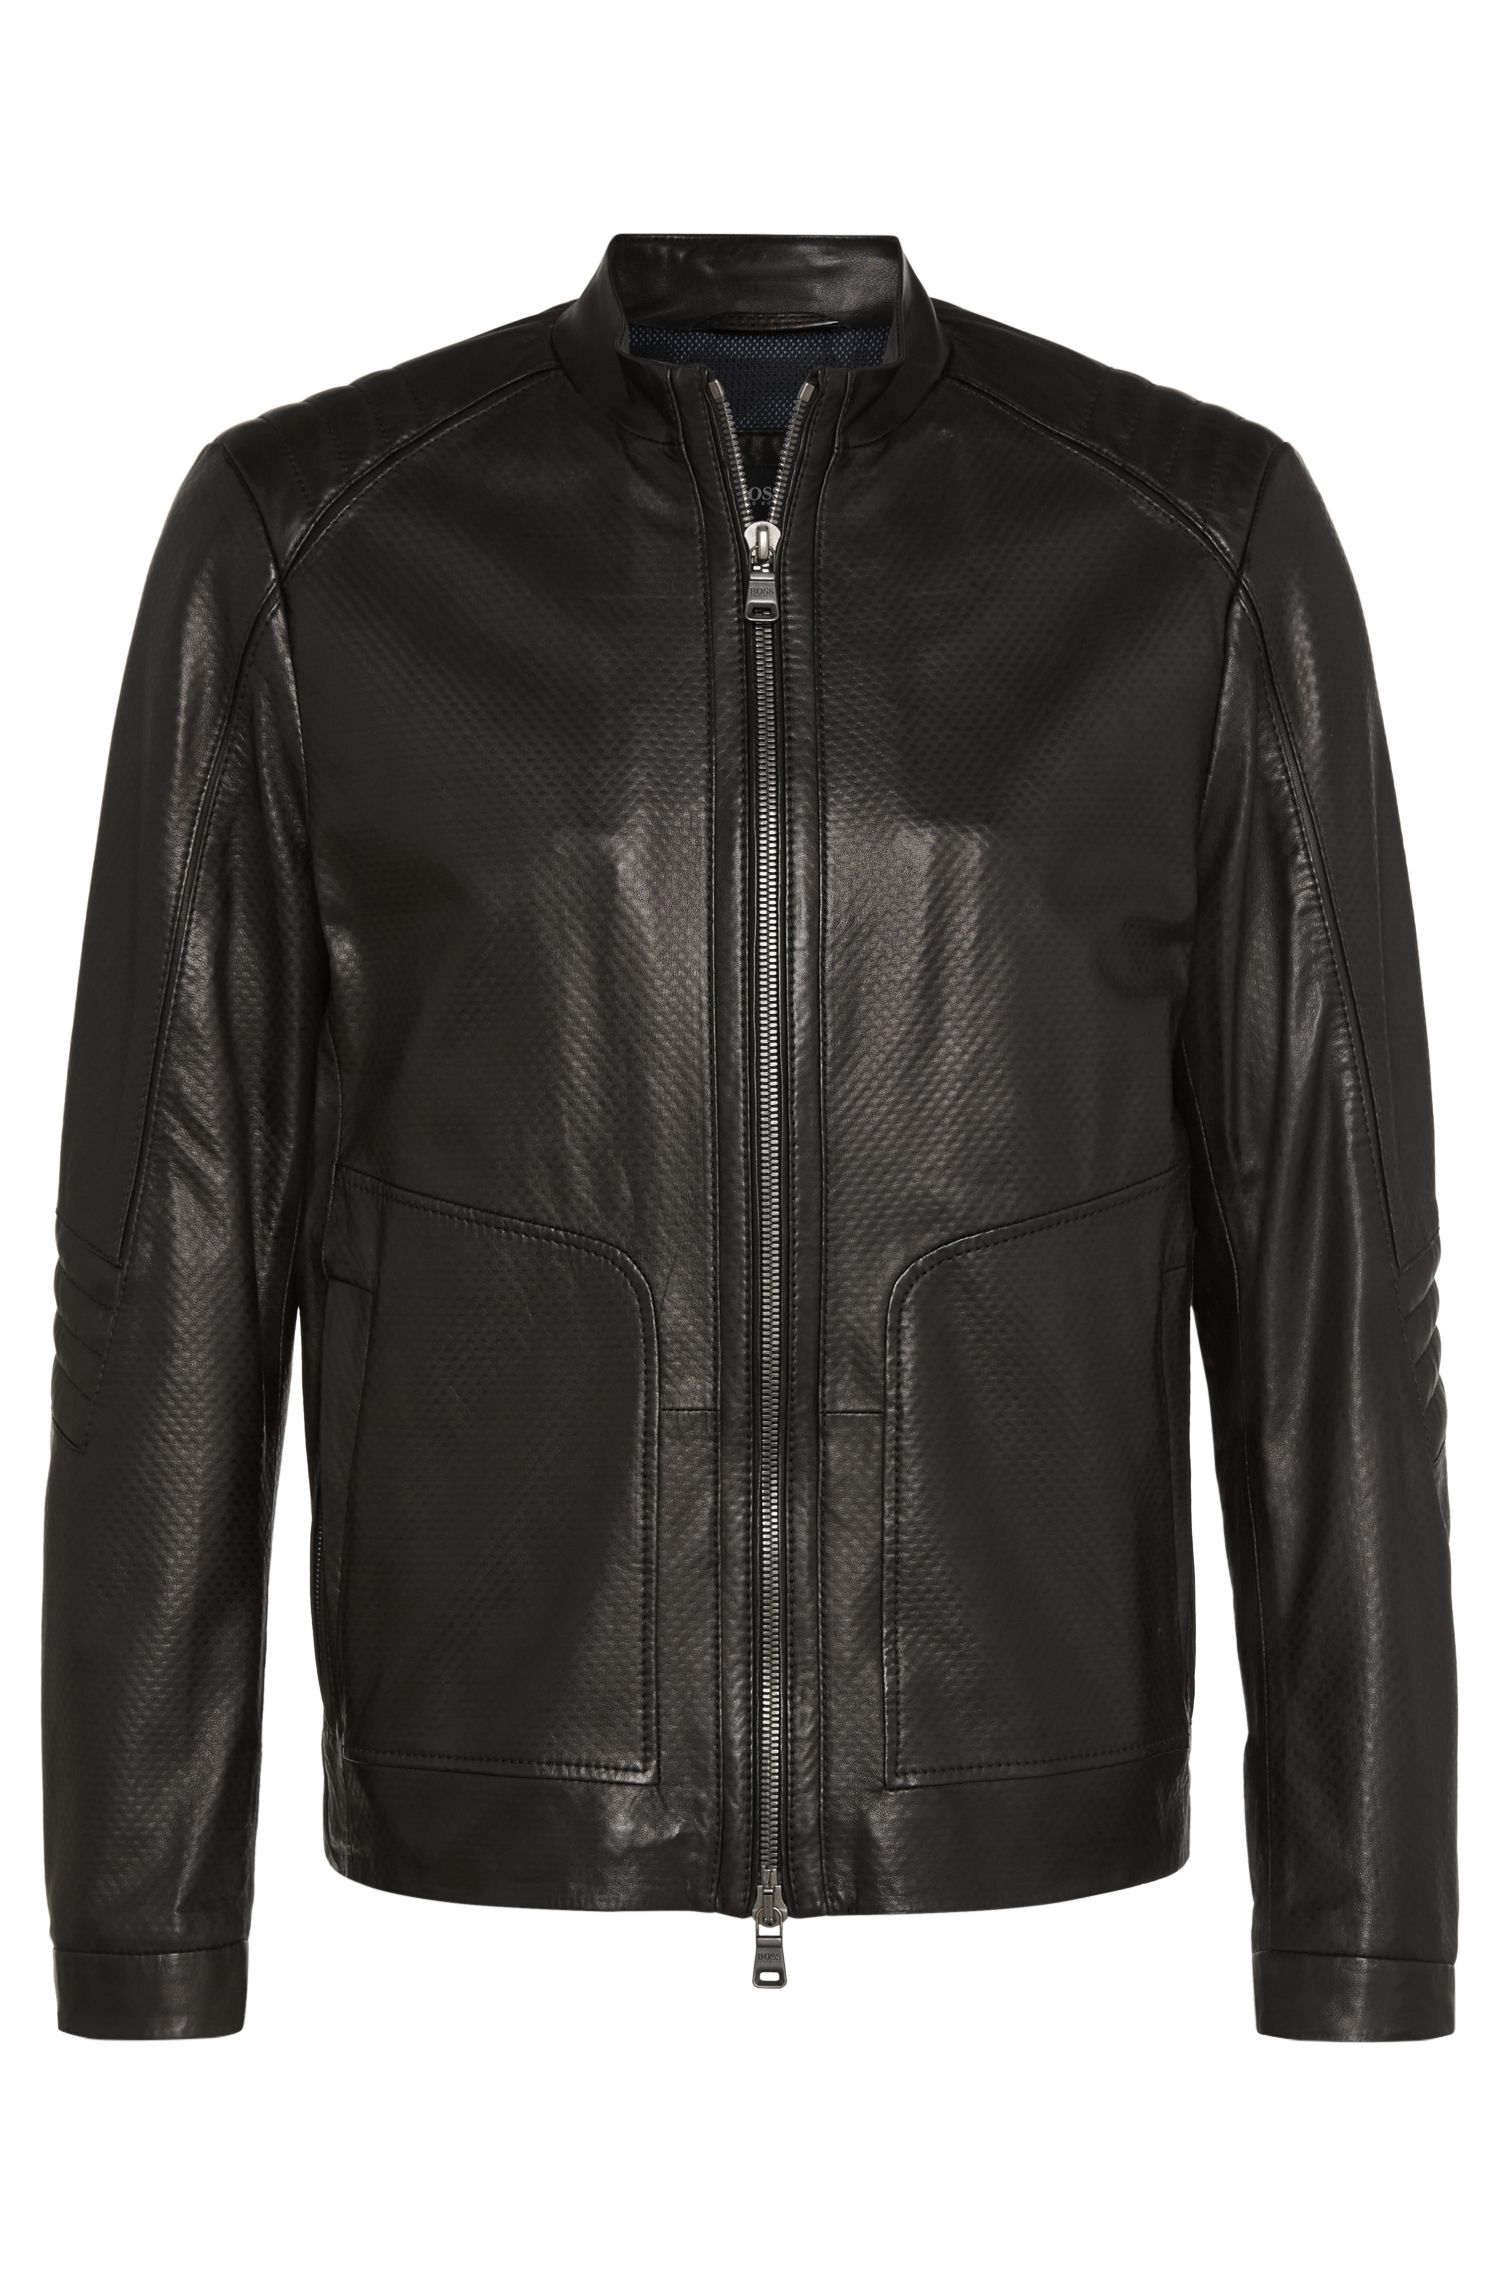 'Nartino' | Lambskin Racing Jacket